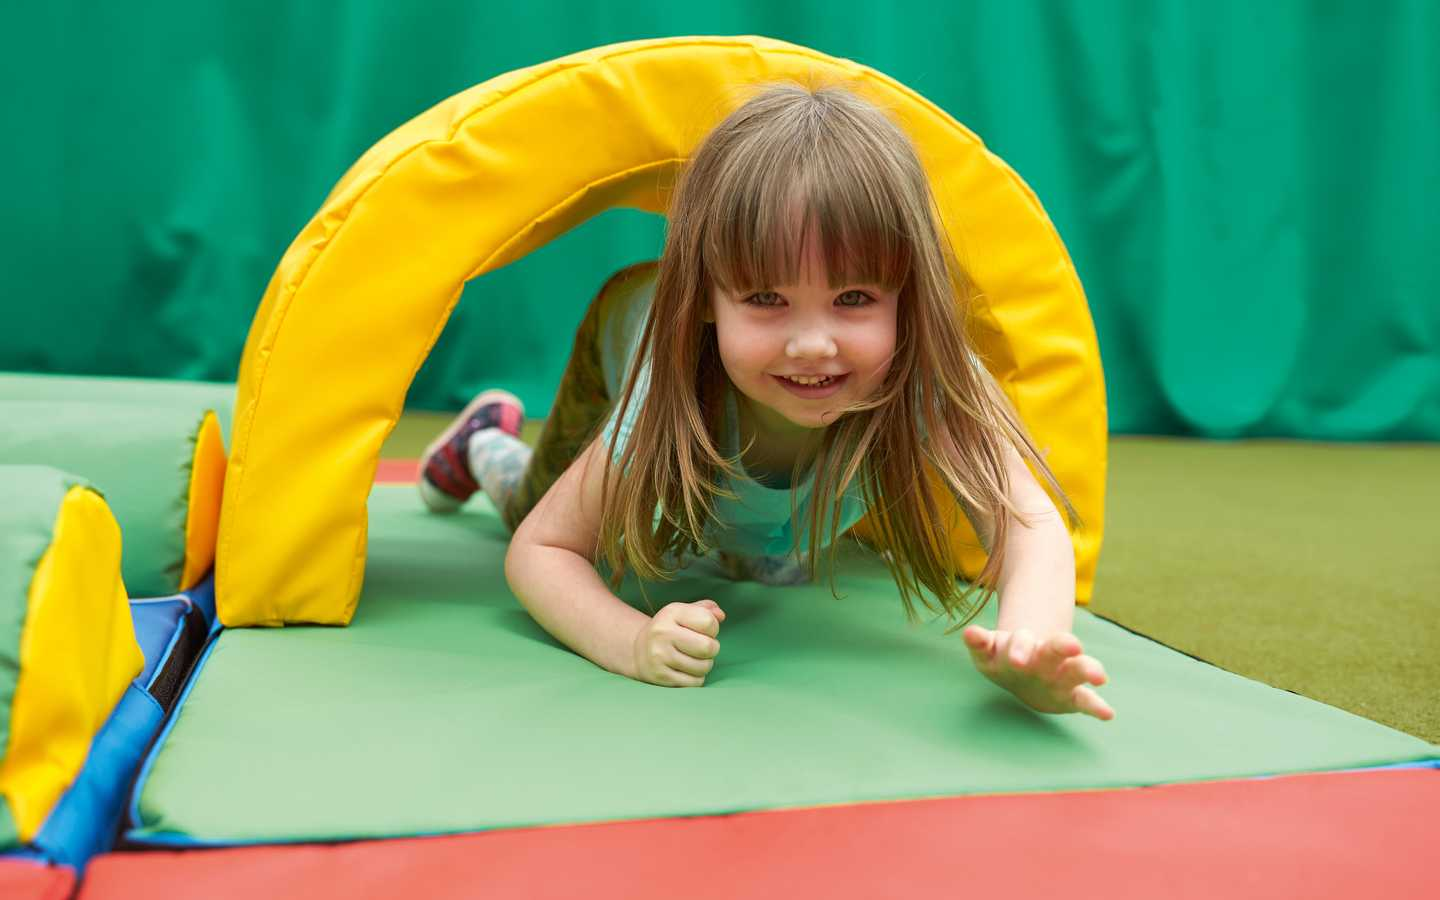 Toddler playing in the soft play area